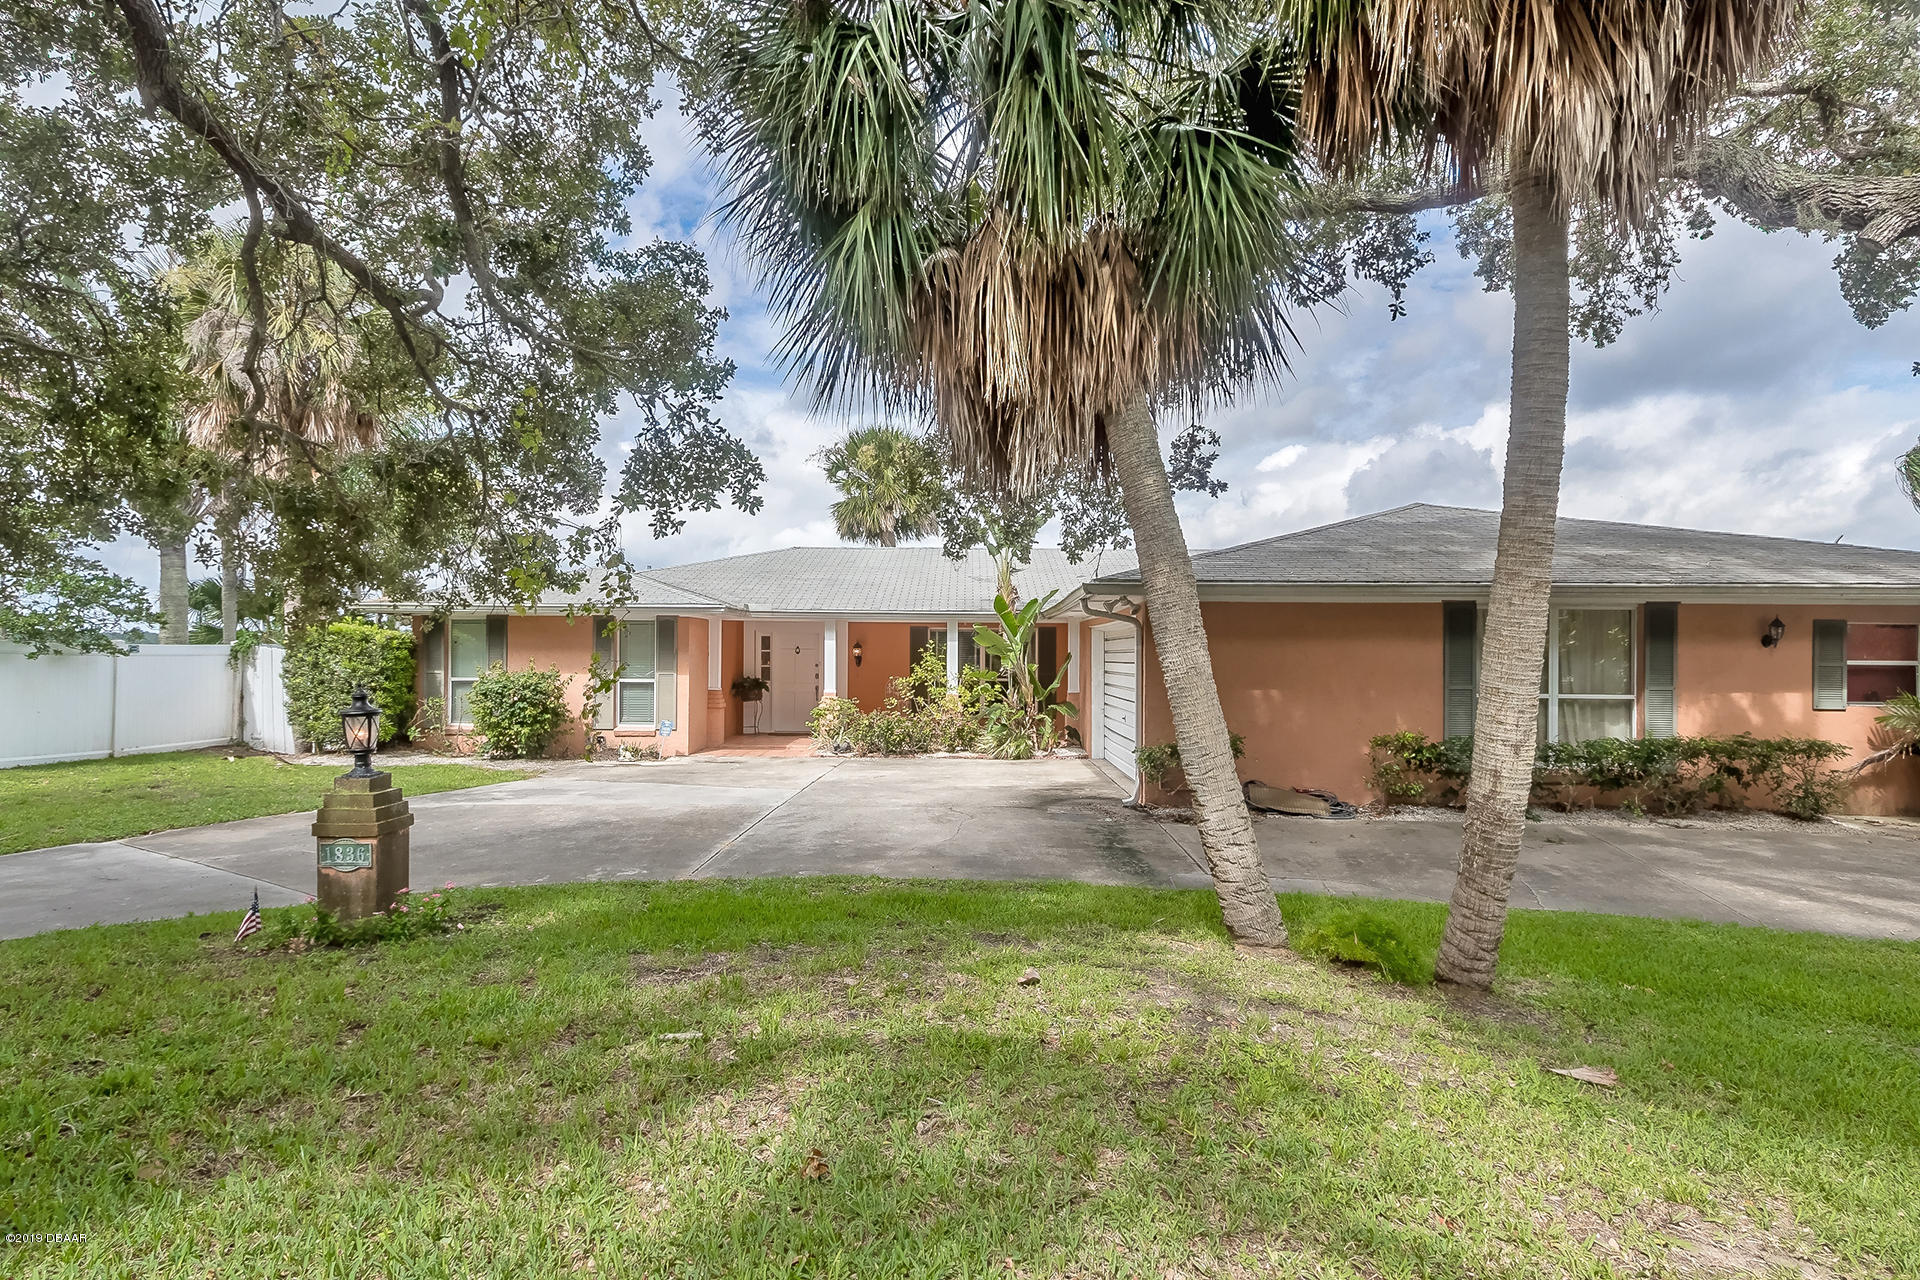 Photo of 1836 John Anderson Drive, Ormond Beach, FL 32176